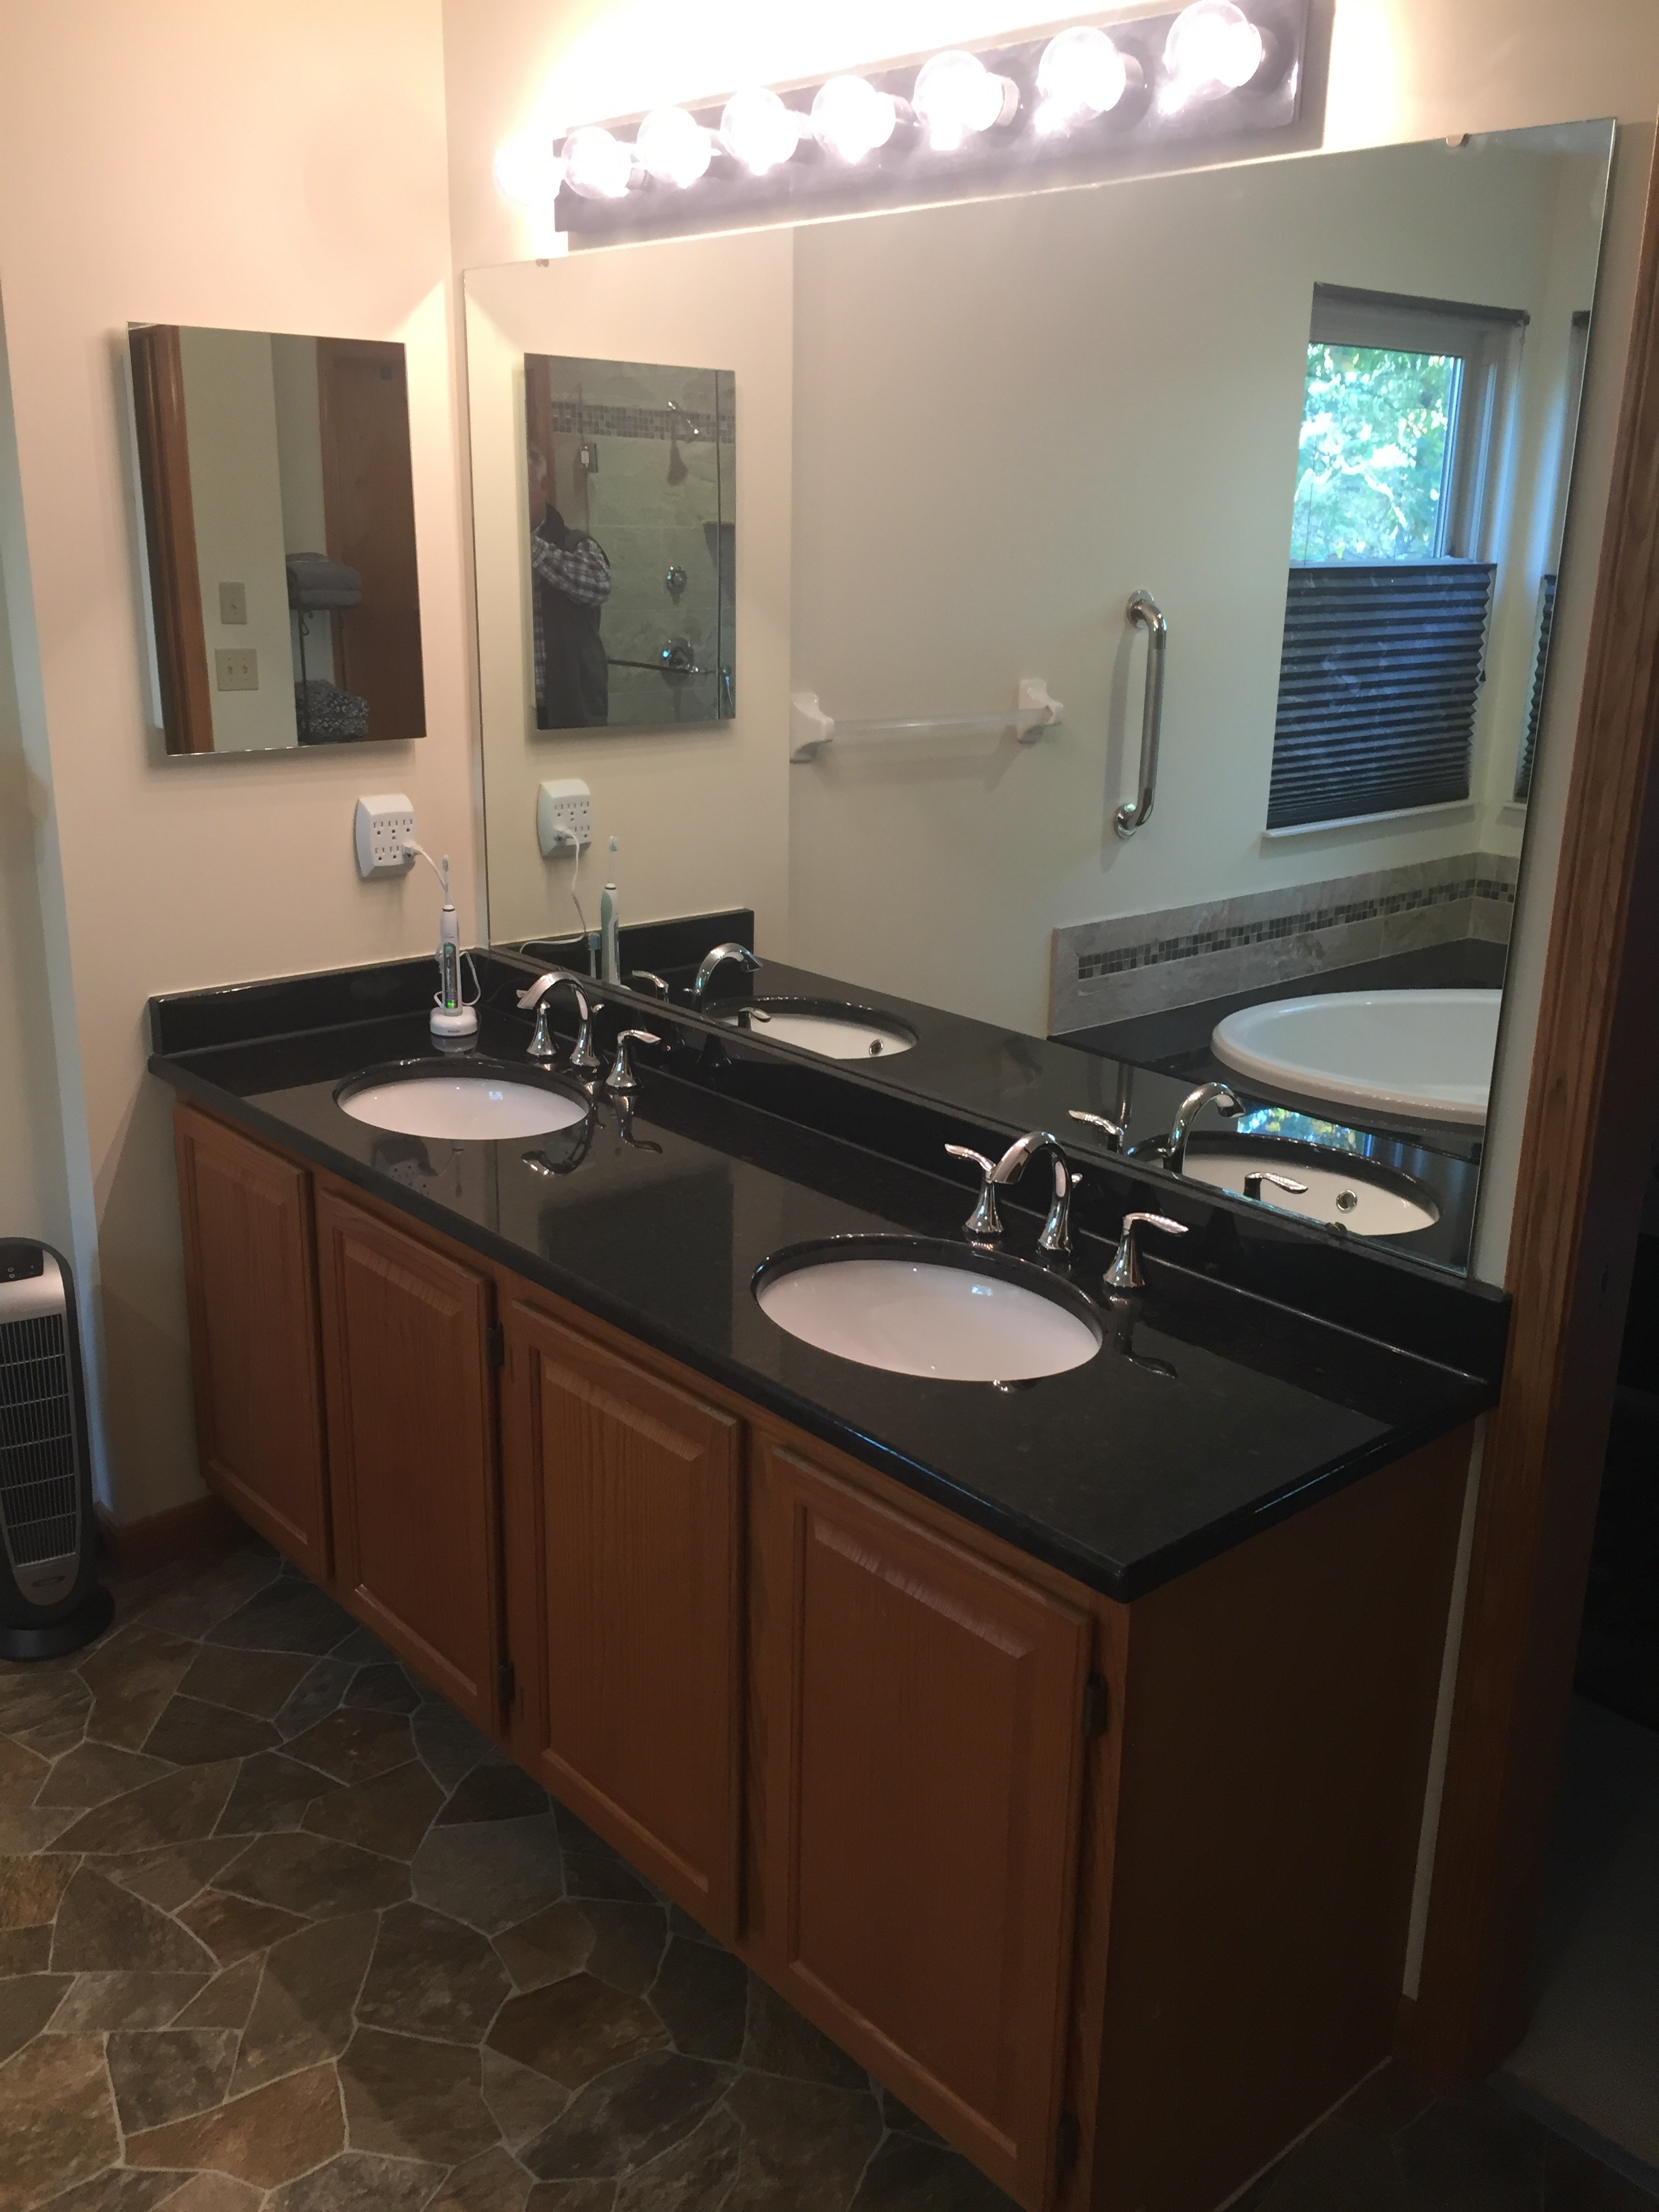 3 Reasons To Trust A Professional For Bathroom Remodeling Kessler Construction Remodeling